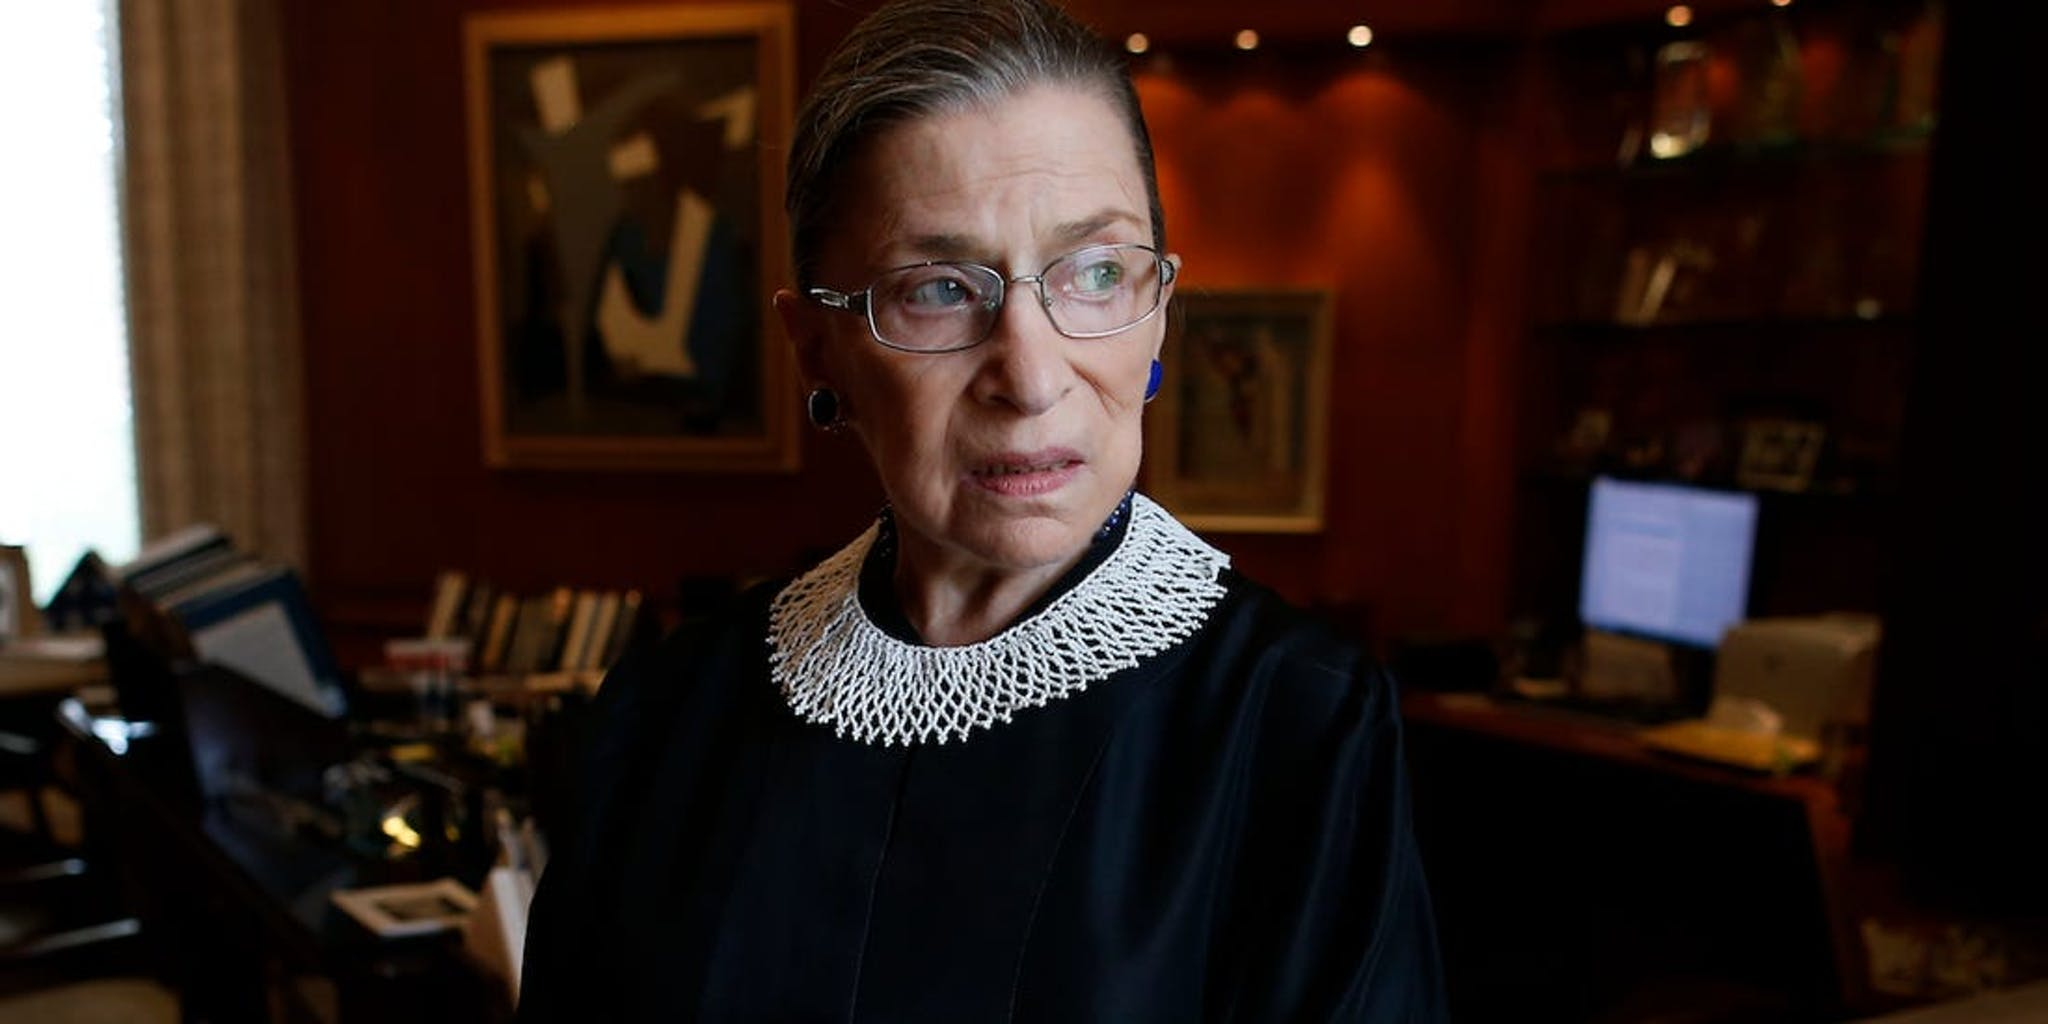 seema blog, seema.com, seema newsletter, seema network, rbg, ruth bader Ginsberg, Seema for successful South Asian women, notorious, Supreme Court judges, Supreme Court